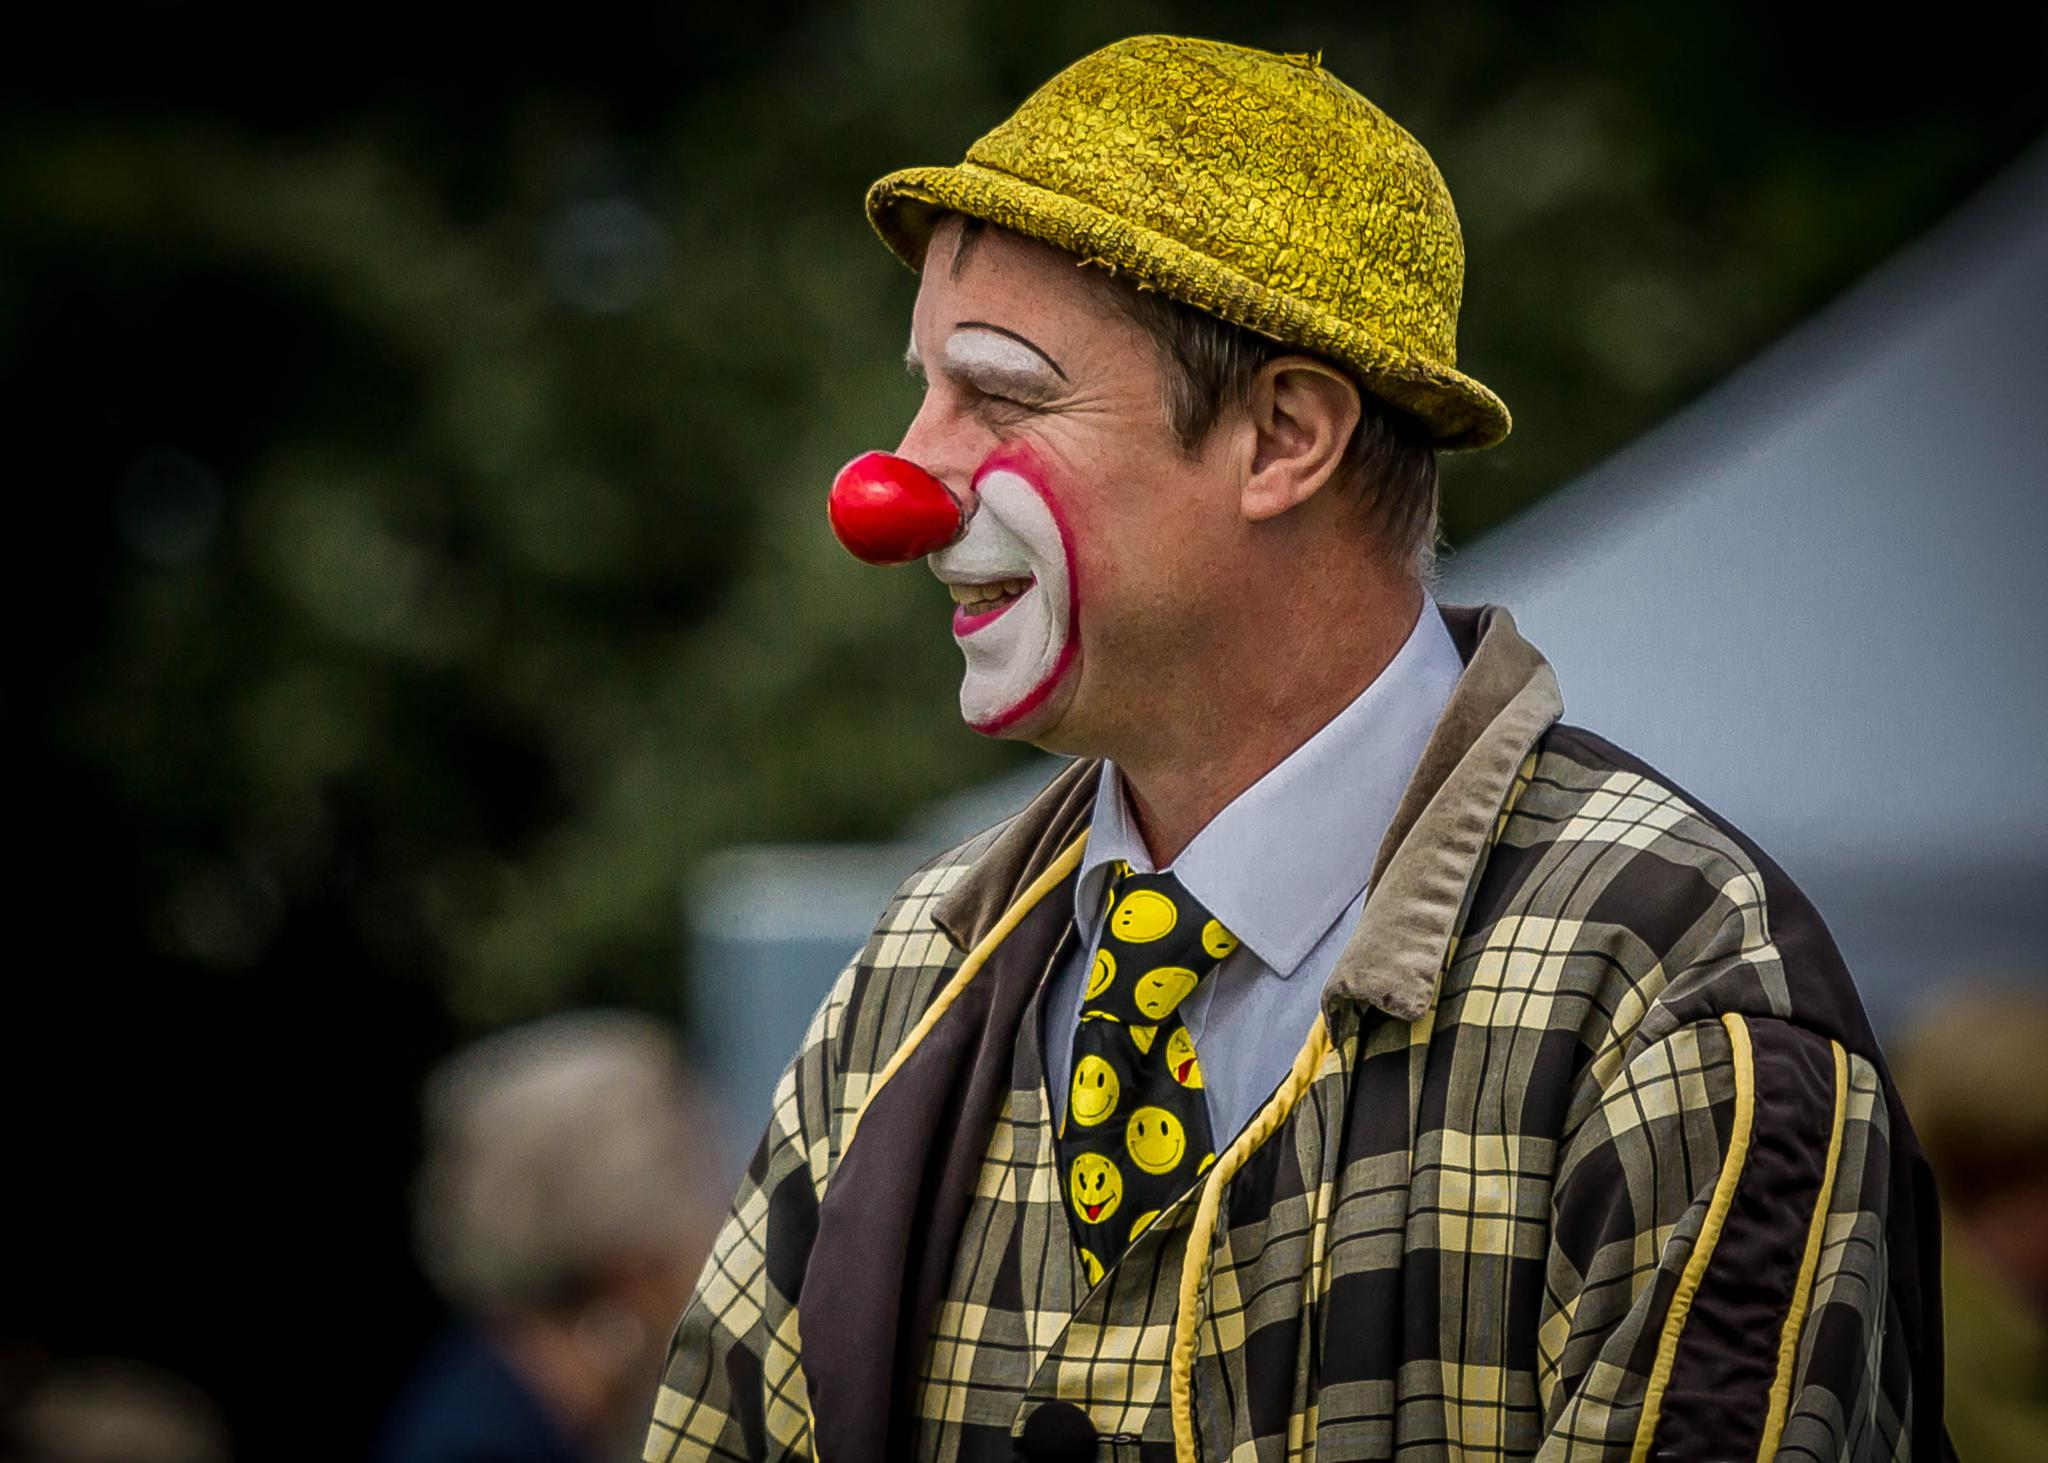 First Clown in Profile ... by Vincent Malcolm